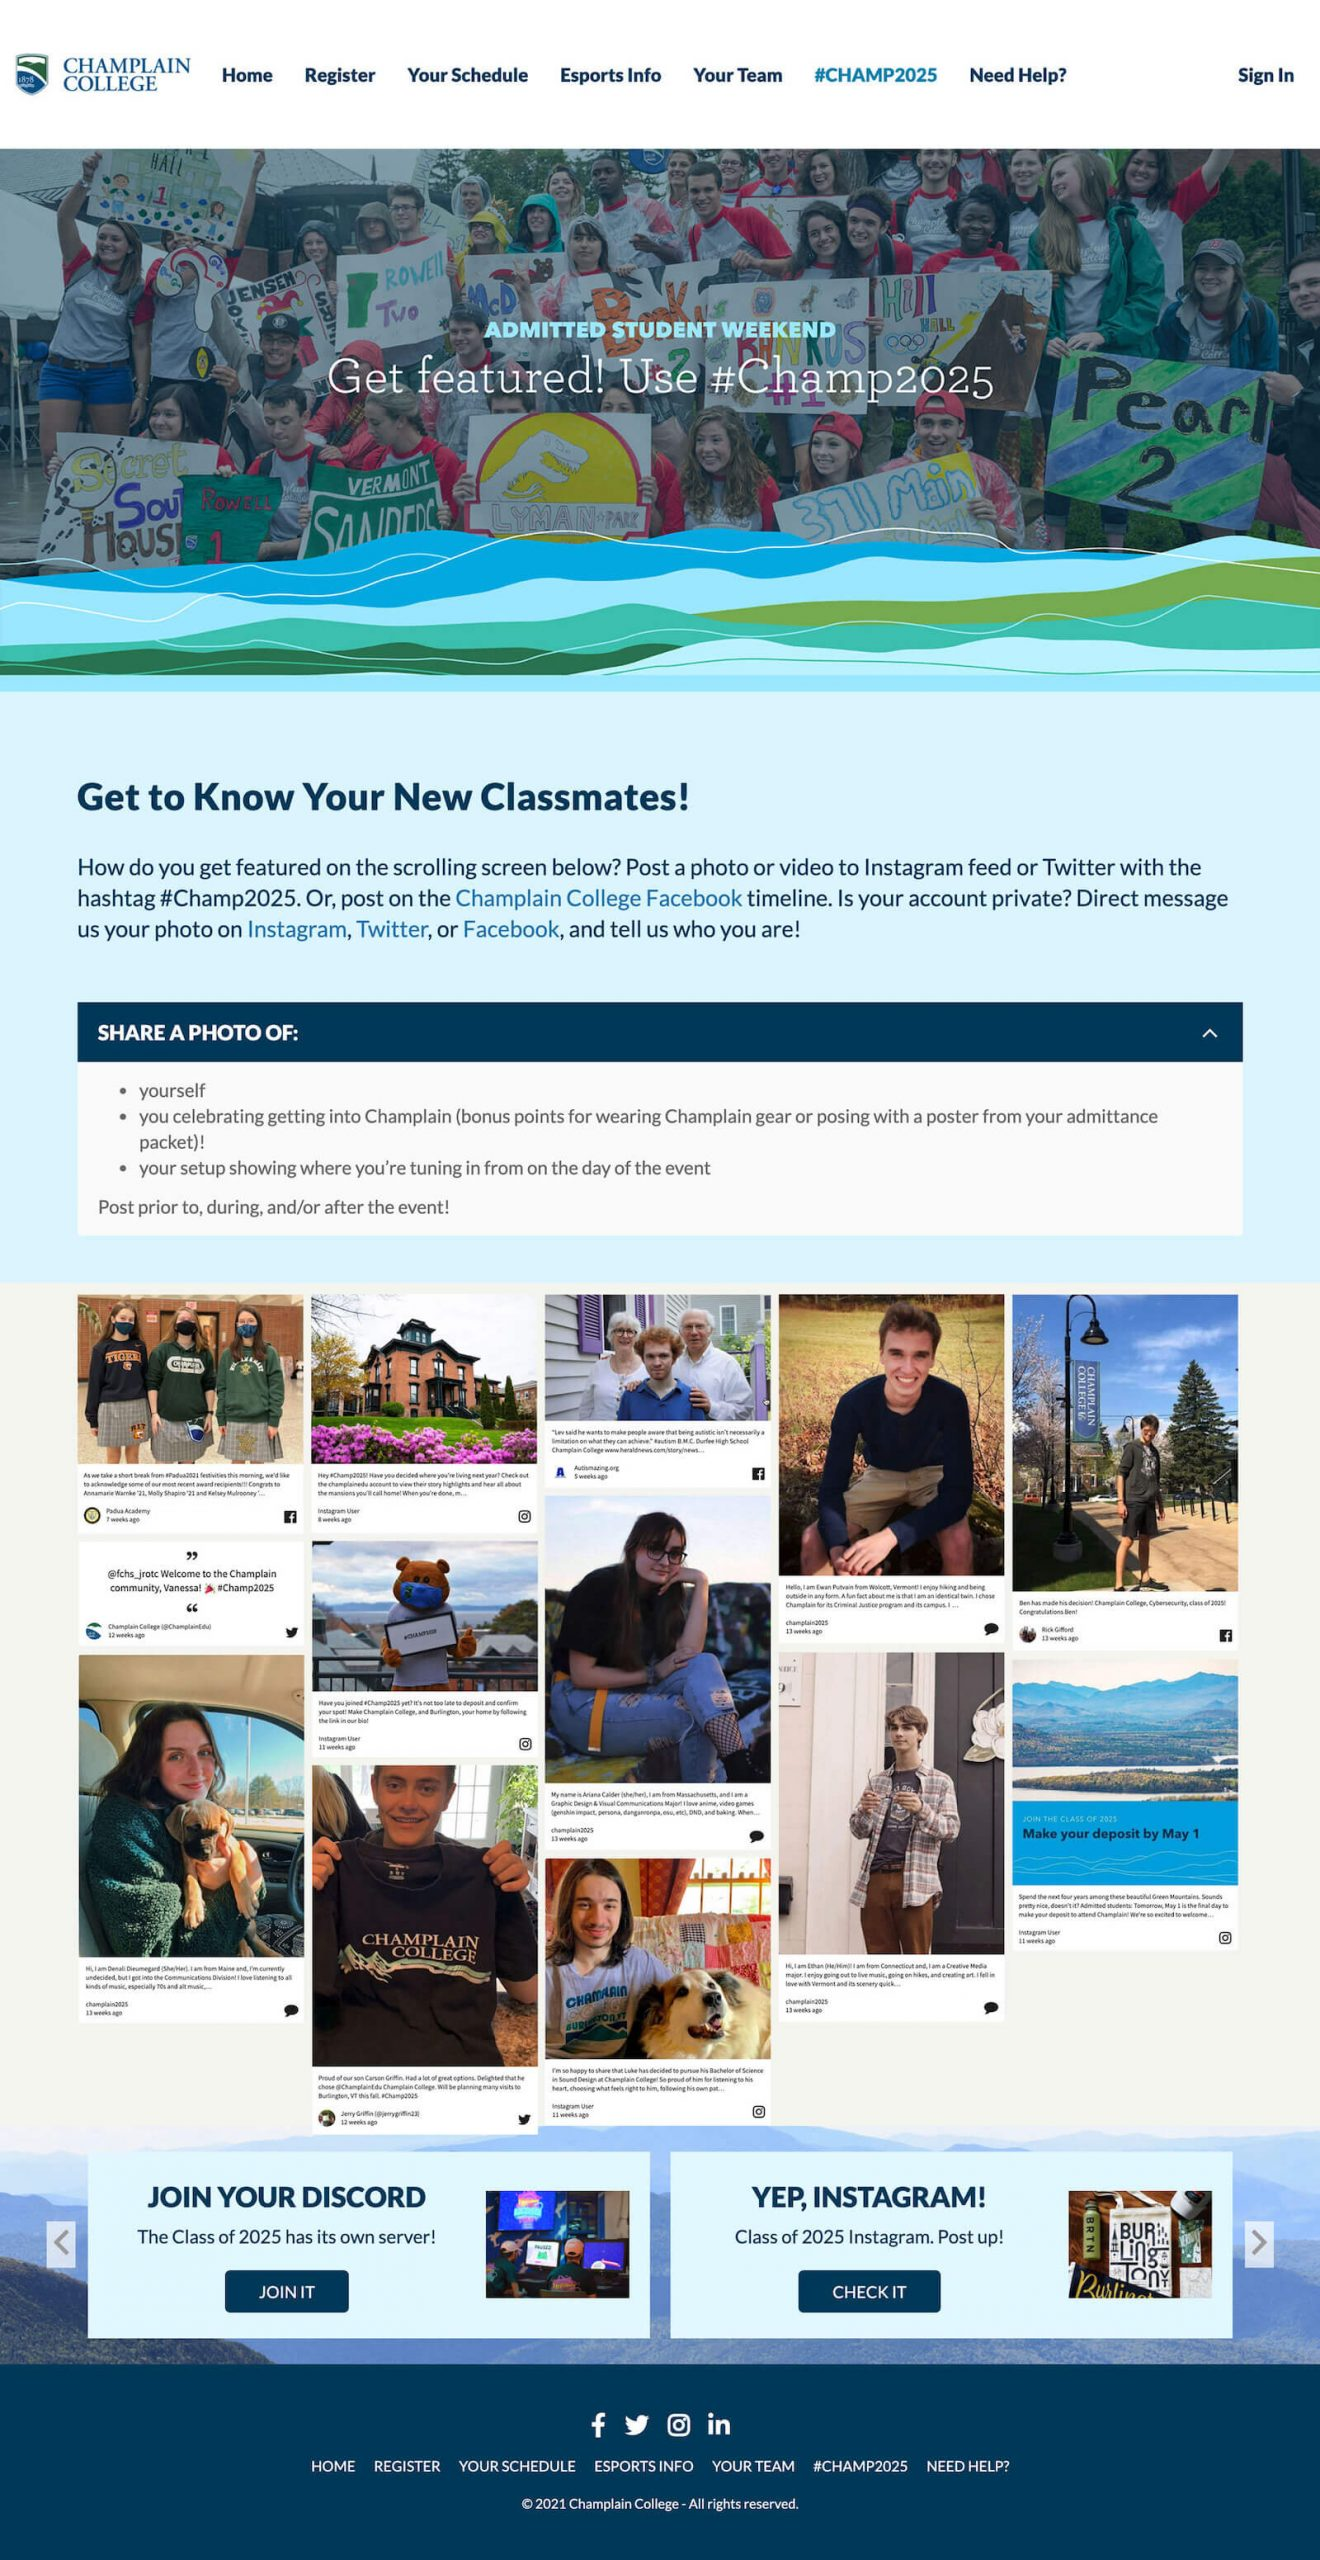 """Screenshot of the Champlain College event page for the Admitted Student Weekend. The header proclaims, """"Get Featured! Use #Champ2025"""" and the social wall is embedded. There are also instructions for what to do and how to post to get on the wall."""